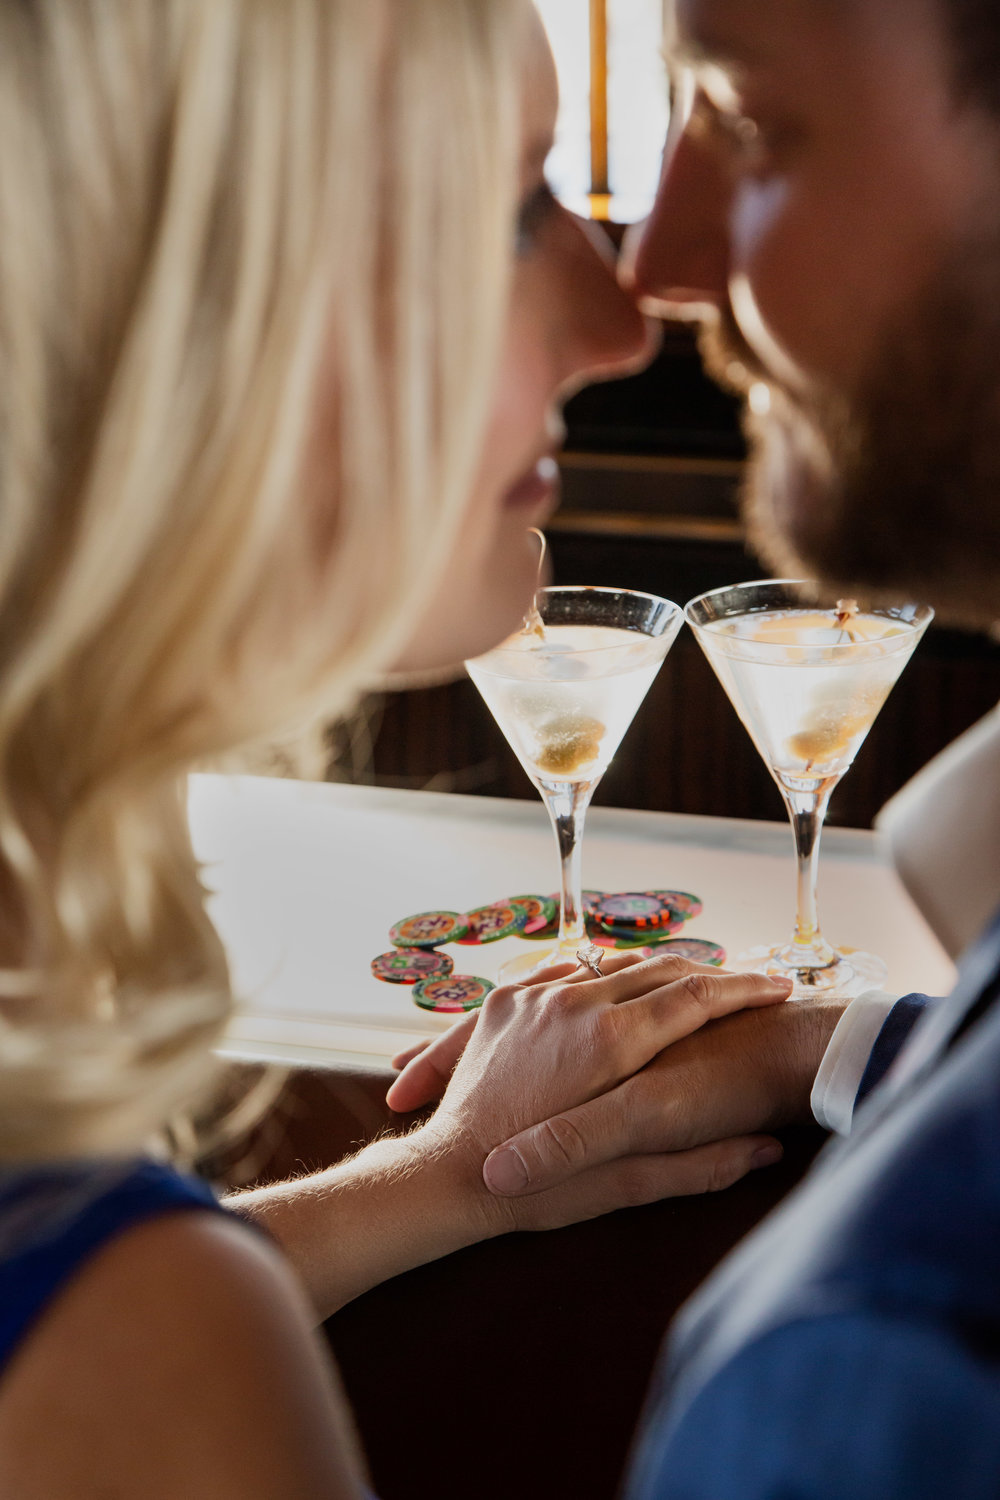 Engagement photos and cocktails.